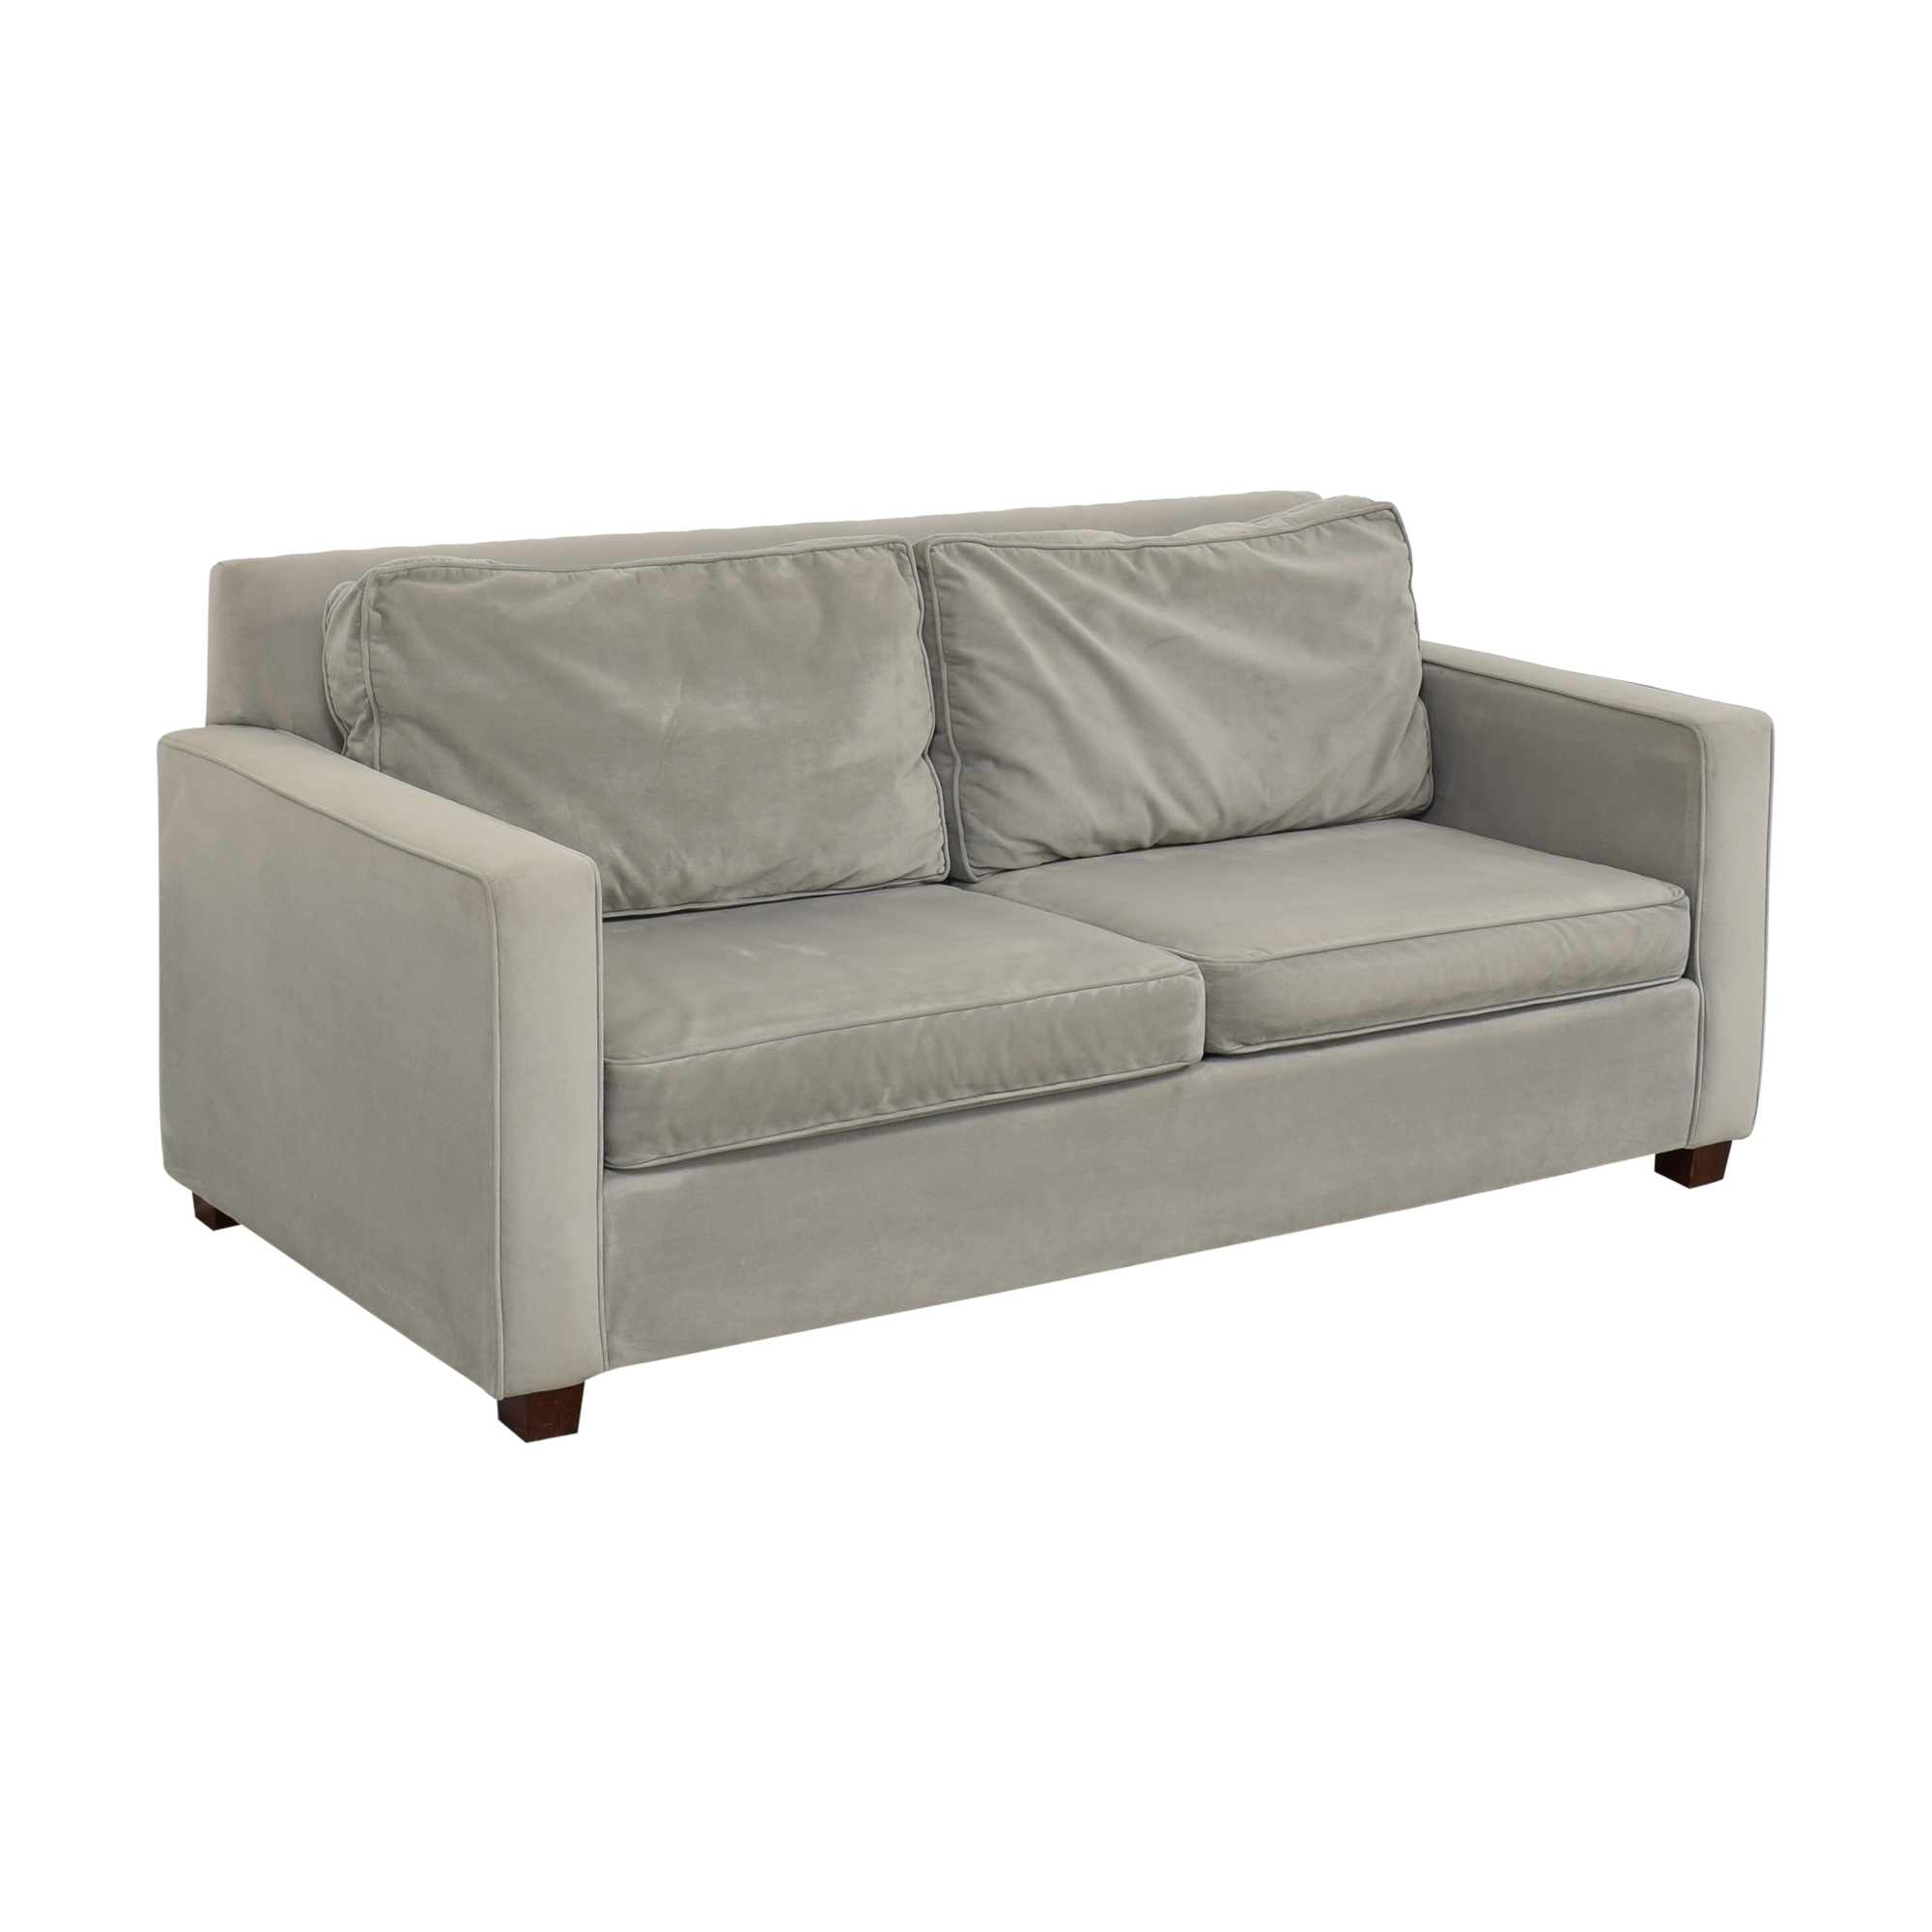 West Elm Henry Sofa / Sofas